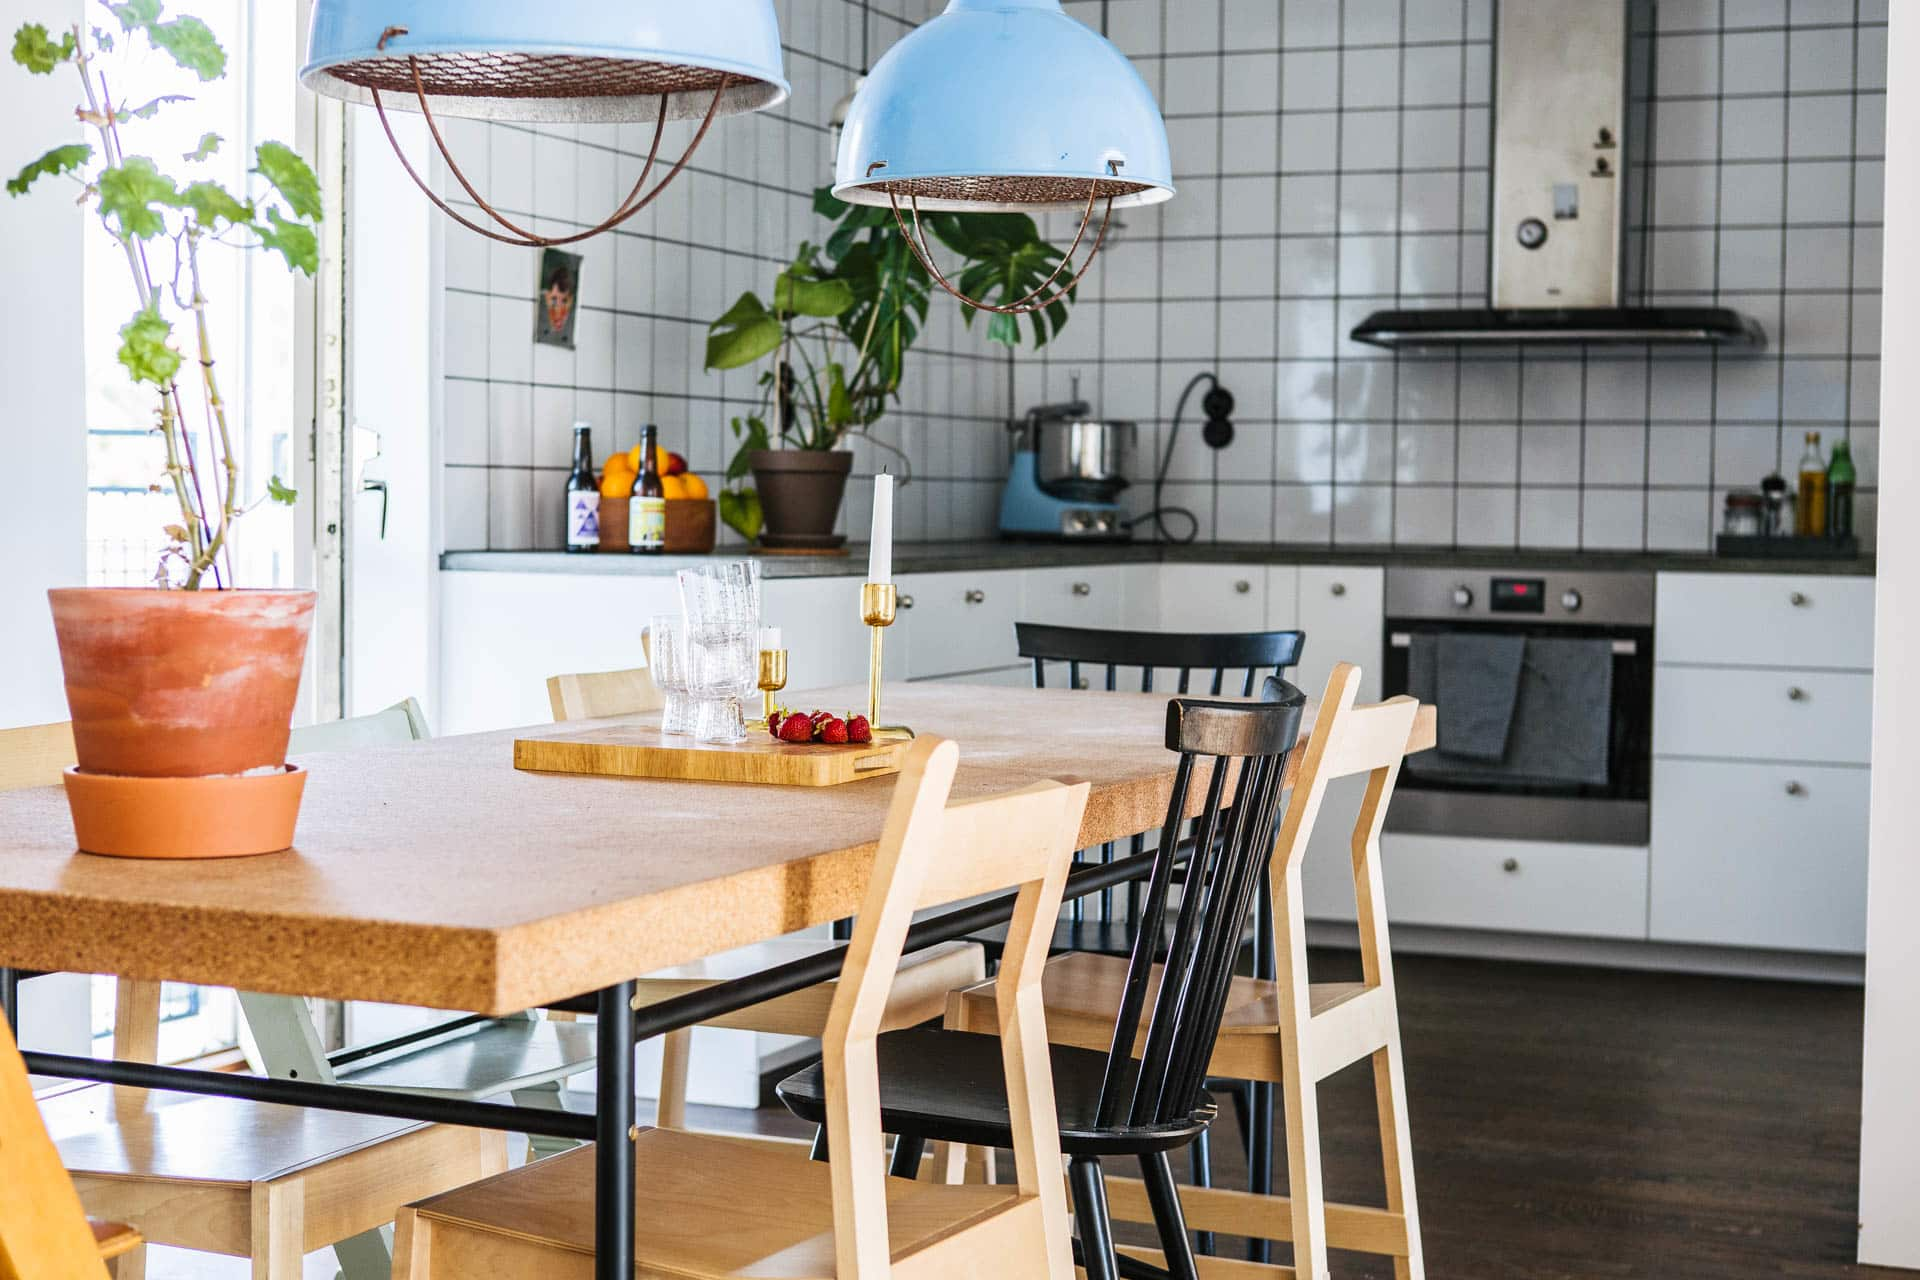 ccpy interior design 34 stunningly scandinavian interior designs home design Hereu0027s Why Weu0027re All Obsessed with the Scandinavian Lifestyle